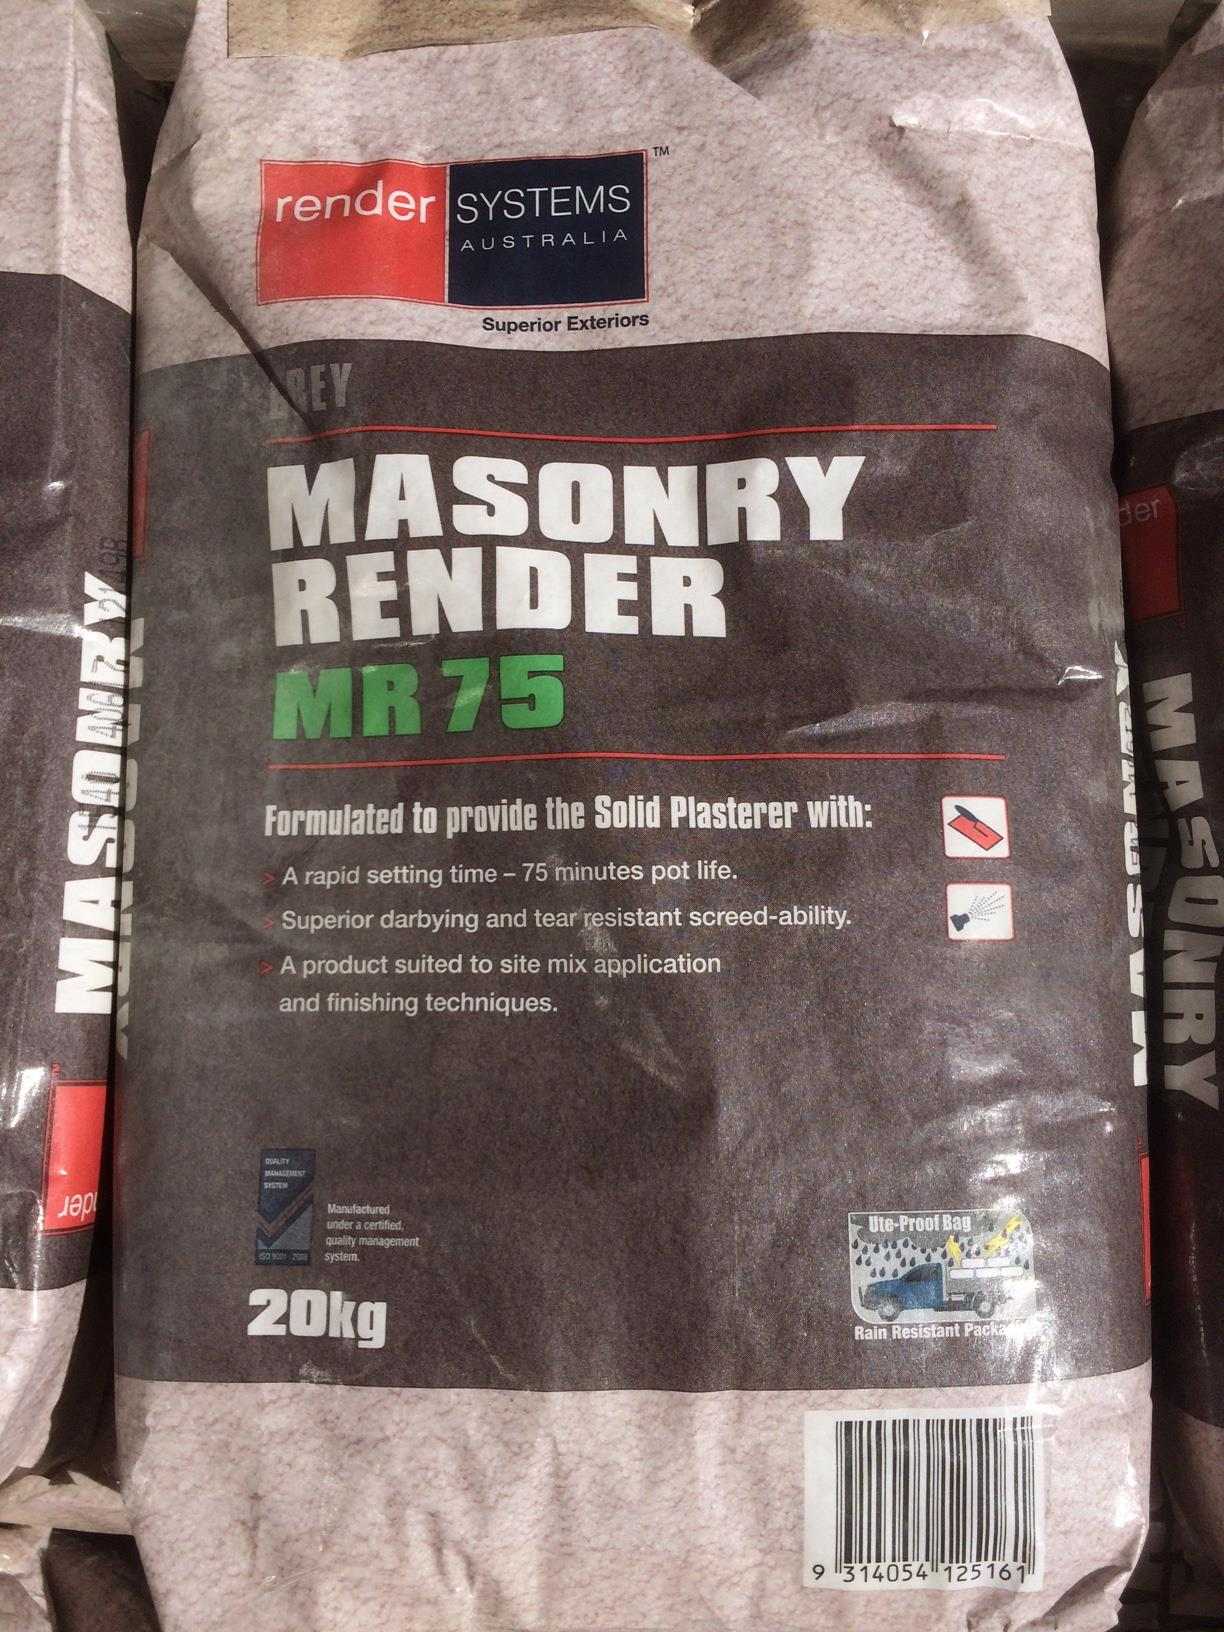 mr75 Masonry Render by Render Systems Australia